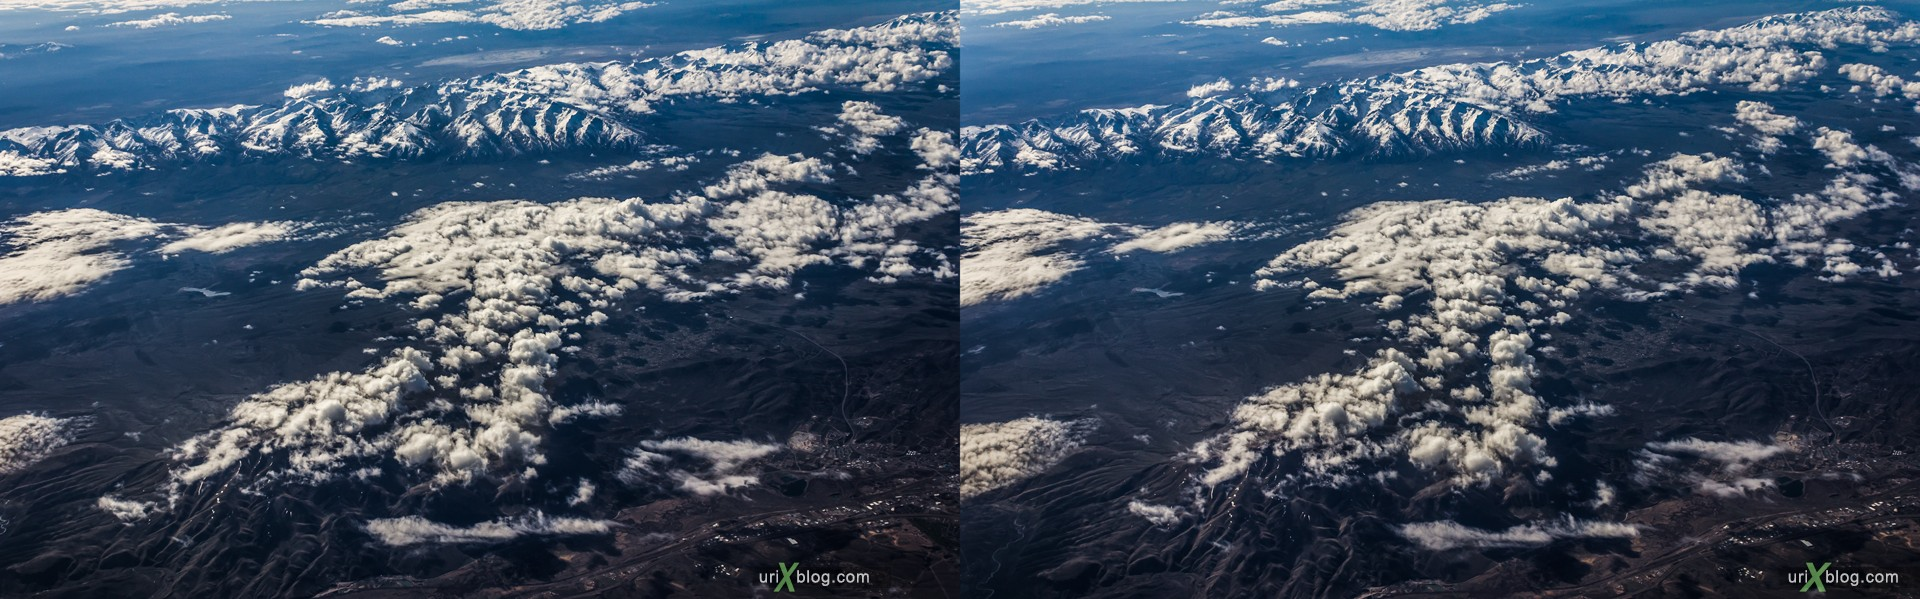 2013, Nevada, Rocky mountains, USA, panorama, airplane, black and white, bw, snow, ice, clouds, horizon, 3D, stereo pair, cross-eyed, crossview, cross view stereo pair, stereoscopic